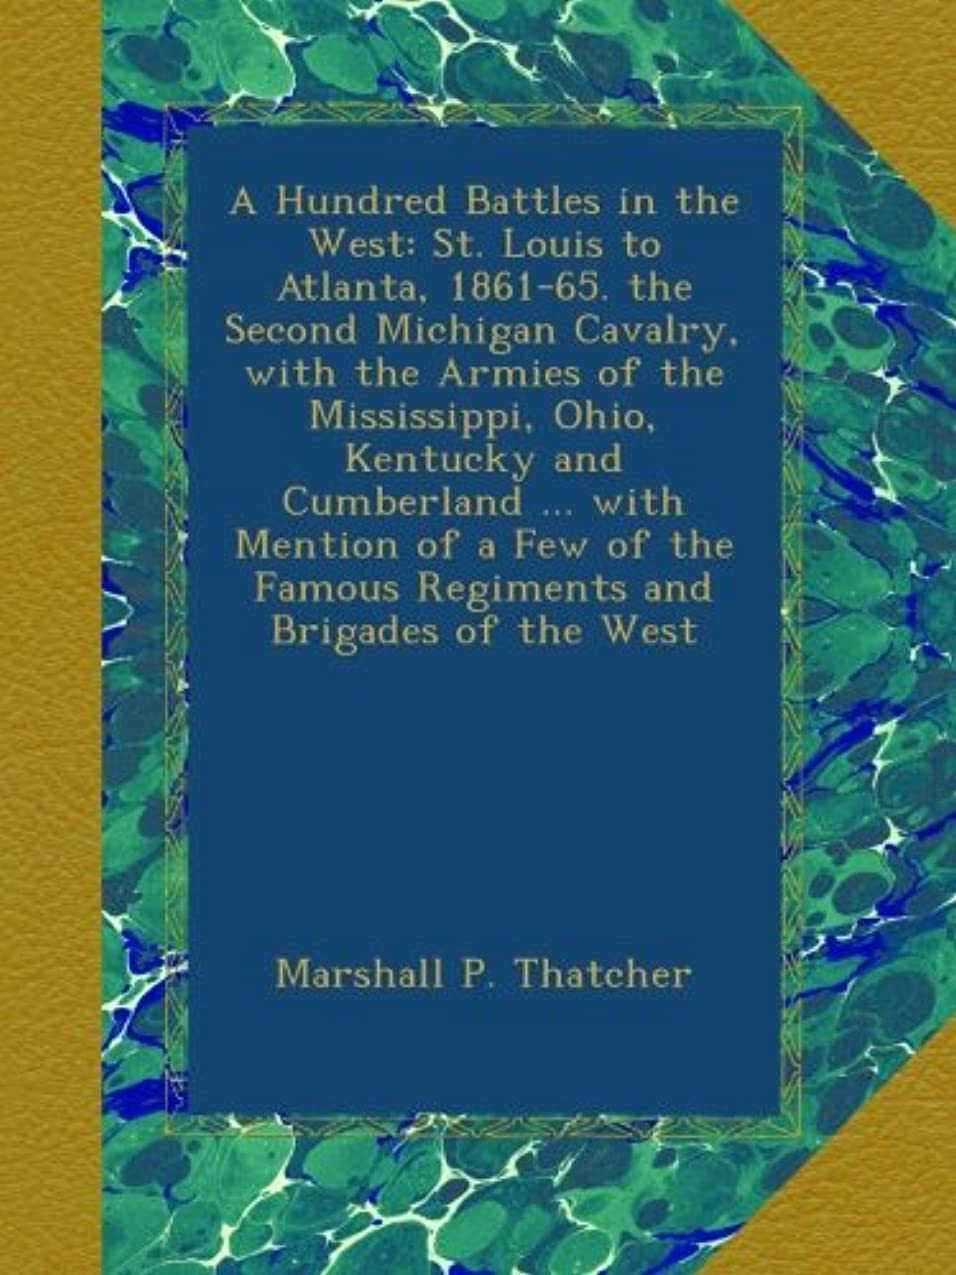 A Hundred Battles in the West: St. Louis to Atlanta, 1861-65. the Second Michigan Cavalry, with the Armies of the Mississippi, Ohio, Kentucky and Cumberland ... with Mention of a Few of the Famous Regiments and Brigades of the West